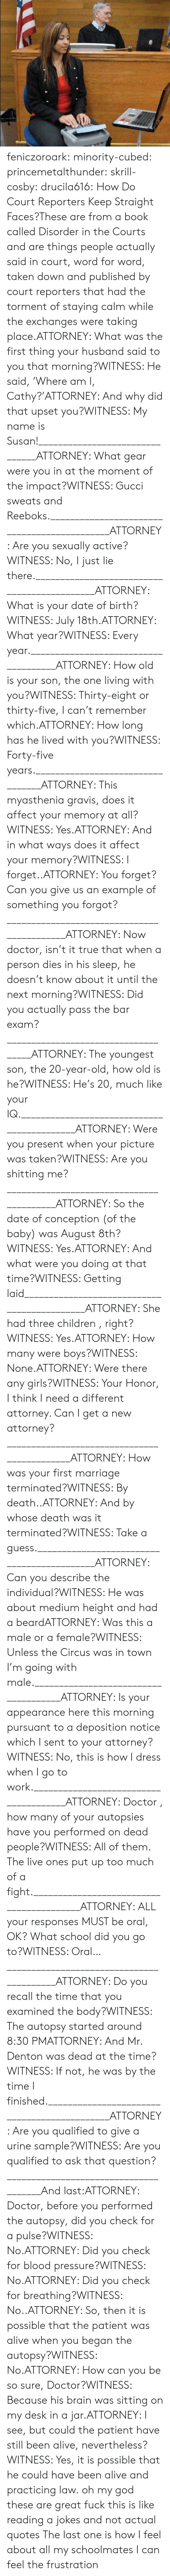 cosby: feniczoroark:  minority-cubed:  princemetalthunder:  skrill-cosby:  drucila616:  How Do Court Reporters Keep Straight Faces?These are from a book called Disorder in the Courts and are things people actually said in court, word for word, taken down and published by court reporters that had the torment of staying calm while the exchanges were taking place.ATTORNEY: What was the first thing your husband said to you that morning?WITNESS: He said, 'Where am I, Cathy?'ATTORNEY: And why did that upset you?WITNESS: My name is Susan!_______________________________ATTORNEY: What gear were you in at the moment of the impact?WITNESS: Gucci sweats and Reeboks.____________________________________________ATTORNEY: Are you sexually active?WITNESS: No, I just lie there.____________________________________________ATTORNEY: What is your date of birth?WITNESS: July 18th.ATTORNEY: What year?WITNESS: Every year._____________________________________ATTORNEY: How old is your son, the one living with you?WITNESS: Thirty-eight or thirty-five, I can't remember which.ATTORNEY: How long has he lived with you?WITNESS: Forty-five years._________________________________ATTORNEY: This myasthenia gravis, does it affect your memory at all?WITNESS: Yes.ATTORNEY: And in what ways does it affect your memory?WITNESS: I forget..ATTORNEY: You forget? Can you give us an example of something you forgot?___________________________________________ATTORNEY: Now doctor, isn't it true that when a person dies in his sleep, he doesn't know about it until the next morning?WITNESS: Did you actually pass the bar exam?____________________________________ATTORNEY: The youngest son, the 20-year-old, how old is he?WITNESS: He's 20, much like your IQ.___________________________________________ATTORNEY: Were you present when your picture was taken?WITNESS: Are you shitting me?_________________________________________ATTORNEY: So the date of conception (of the baby) was August 8th?WITNESS: Yes.ATTORNEY: And what were you doing at that time?WITNESS: Getting laid____________________________________________ATTORNEY: She had three children , right?WITNESS: Yes.ATTORNEY: How many were boys?WITNESS: None.ATTORNEY: Were there any girls?WITNESS: Your Honor, I think I need a different attorney. Can I get a new attorney?____________________________________________ATTORNEY: How was your first marriage terminated?WITNESS: By death..ATTORNEY: And by whose death was it terminated?WITNESS: Take a guess.___________________________________________ATTORNEY: Can you describe the individual?WITNESS: He was about medium height and had a beardATTORNEY: Was this a male or a female?WITNESS: Unless the Circus was in town I'm going with male._____________________________________ATTORNEY: Is your appearance here this morning pursuant to a deposition notice which I sent to your attorney?WITNESS: No, this is how I dress when I go to work.______________________________________ATTORNEY: Doctor , how many of your autopsies have you performed on dead people?WITNESS: All of them. The live ones put up too much of a fight._________________________________________ATTORNEY: ALL your responses MUST be oral, OK? What school did you go to?WITNESS: Oral…_________________________________________ATTORNEY: Do you recall the time that you examined the body?WITNESS: The autopsy started around 8:30 PMATTORNEY: And Mr. Denton was dead at the time?WITNESS: If not, he was by the time I finished.____________________________________________ATTORNEY: Are you qualified to give a urine sample?WITNESS: Are you qualified to ask that question?______________________________________And last:ATTORNEY: Doctor, before you performed the autopsy, did you check for a pulse?WITNESS: No.ATTORNEY: Did you check for blood pressure?WITNESS: No.ATTORNEY: Did you check for breathing?WITNESS: No..ATTORNEY: So, then it is possible that the patient was alive when you began the autopsy?WITNESS: No.ATTORNEY: How can you be so sure, Doctor?WITNESS: Because his brain was sitting on my desk in a jar.ATTORNEY: I see, but could the patient have still been alive, nevertheless?WITNESS: Yes, it is possible that he could have been alive and practicing law.  oh my god these are great  fuck this is like reading a jokes and not actual quotes   The last one is how I feel about all my schoolmates  I can feel the frustration